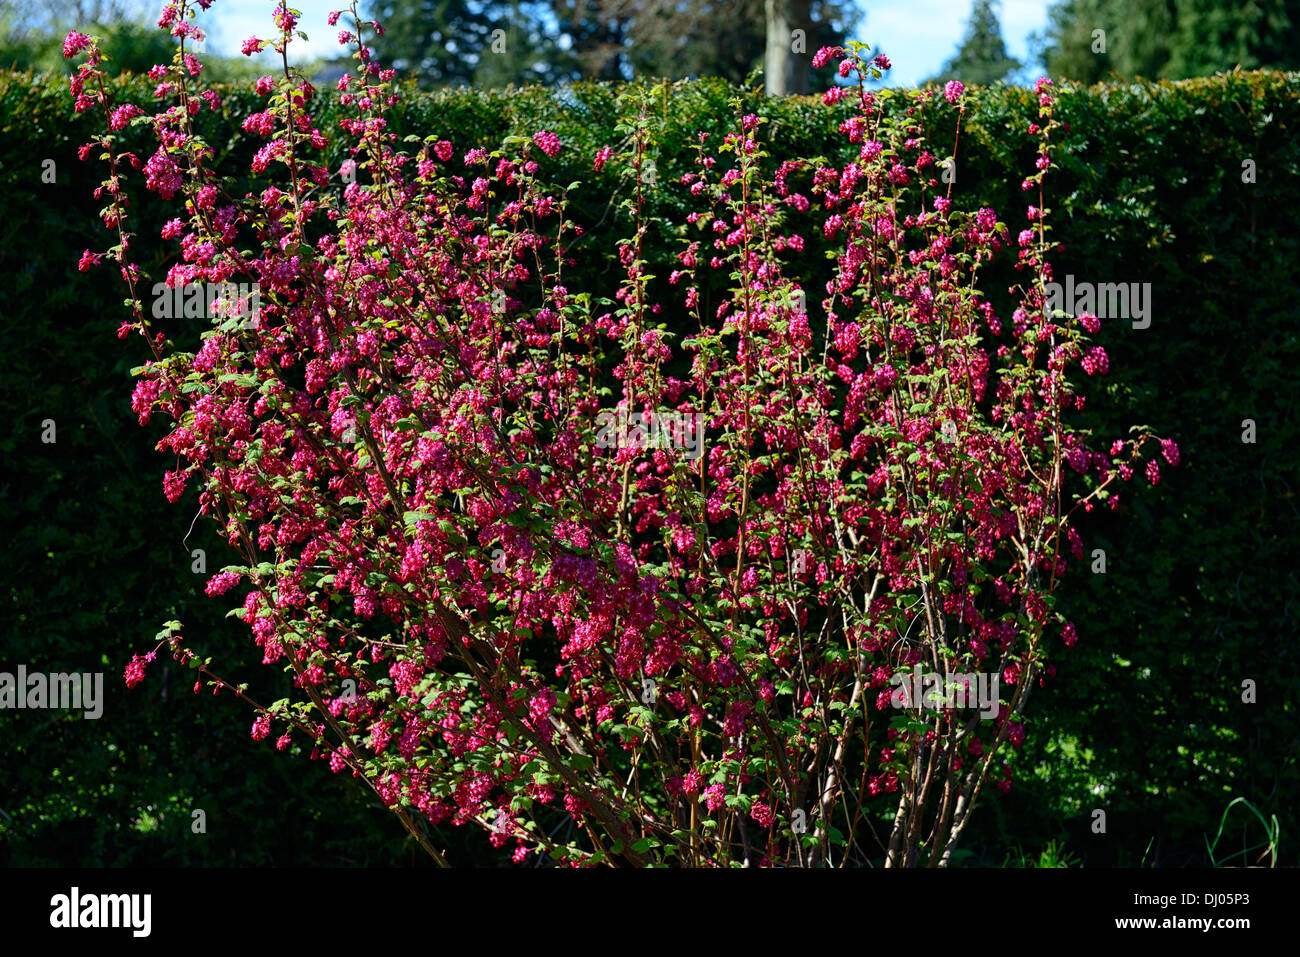 Flowering currant stock photos flowering currant stock images alamy ribes sanguineum superbum flowering currant closeup pink flowers plant portraits deciduous shrub shrubs currants stock mightylinksfo